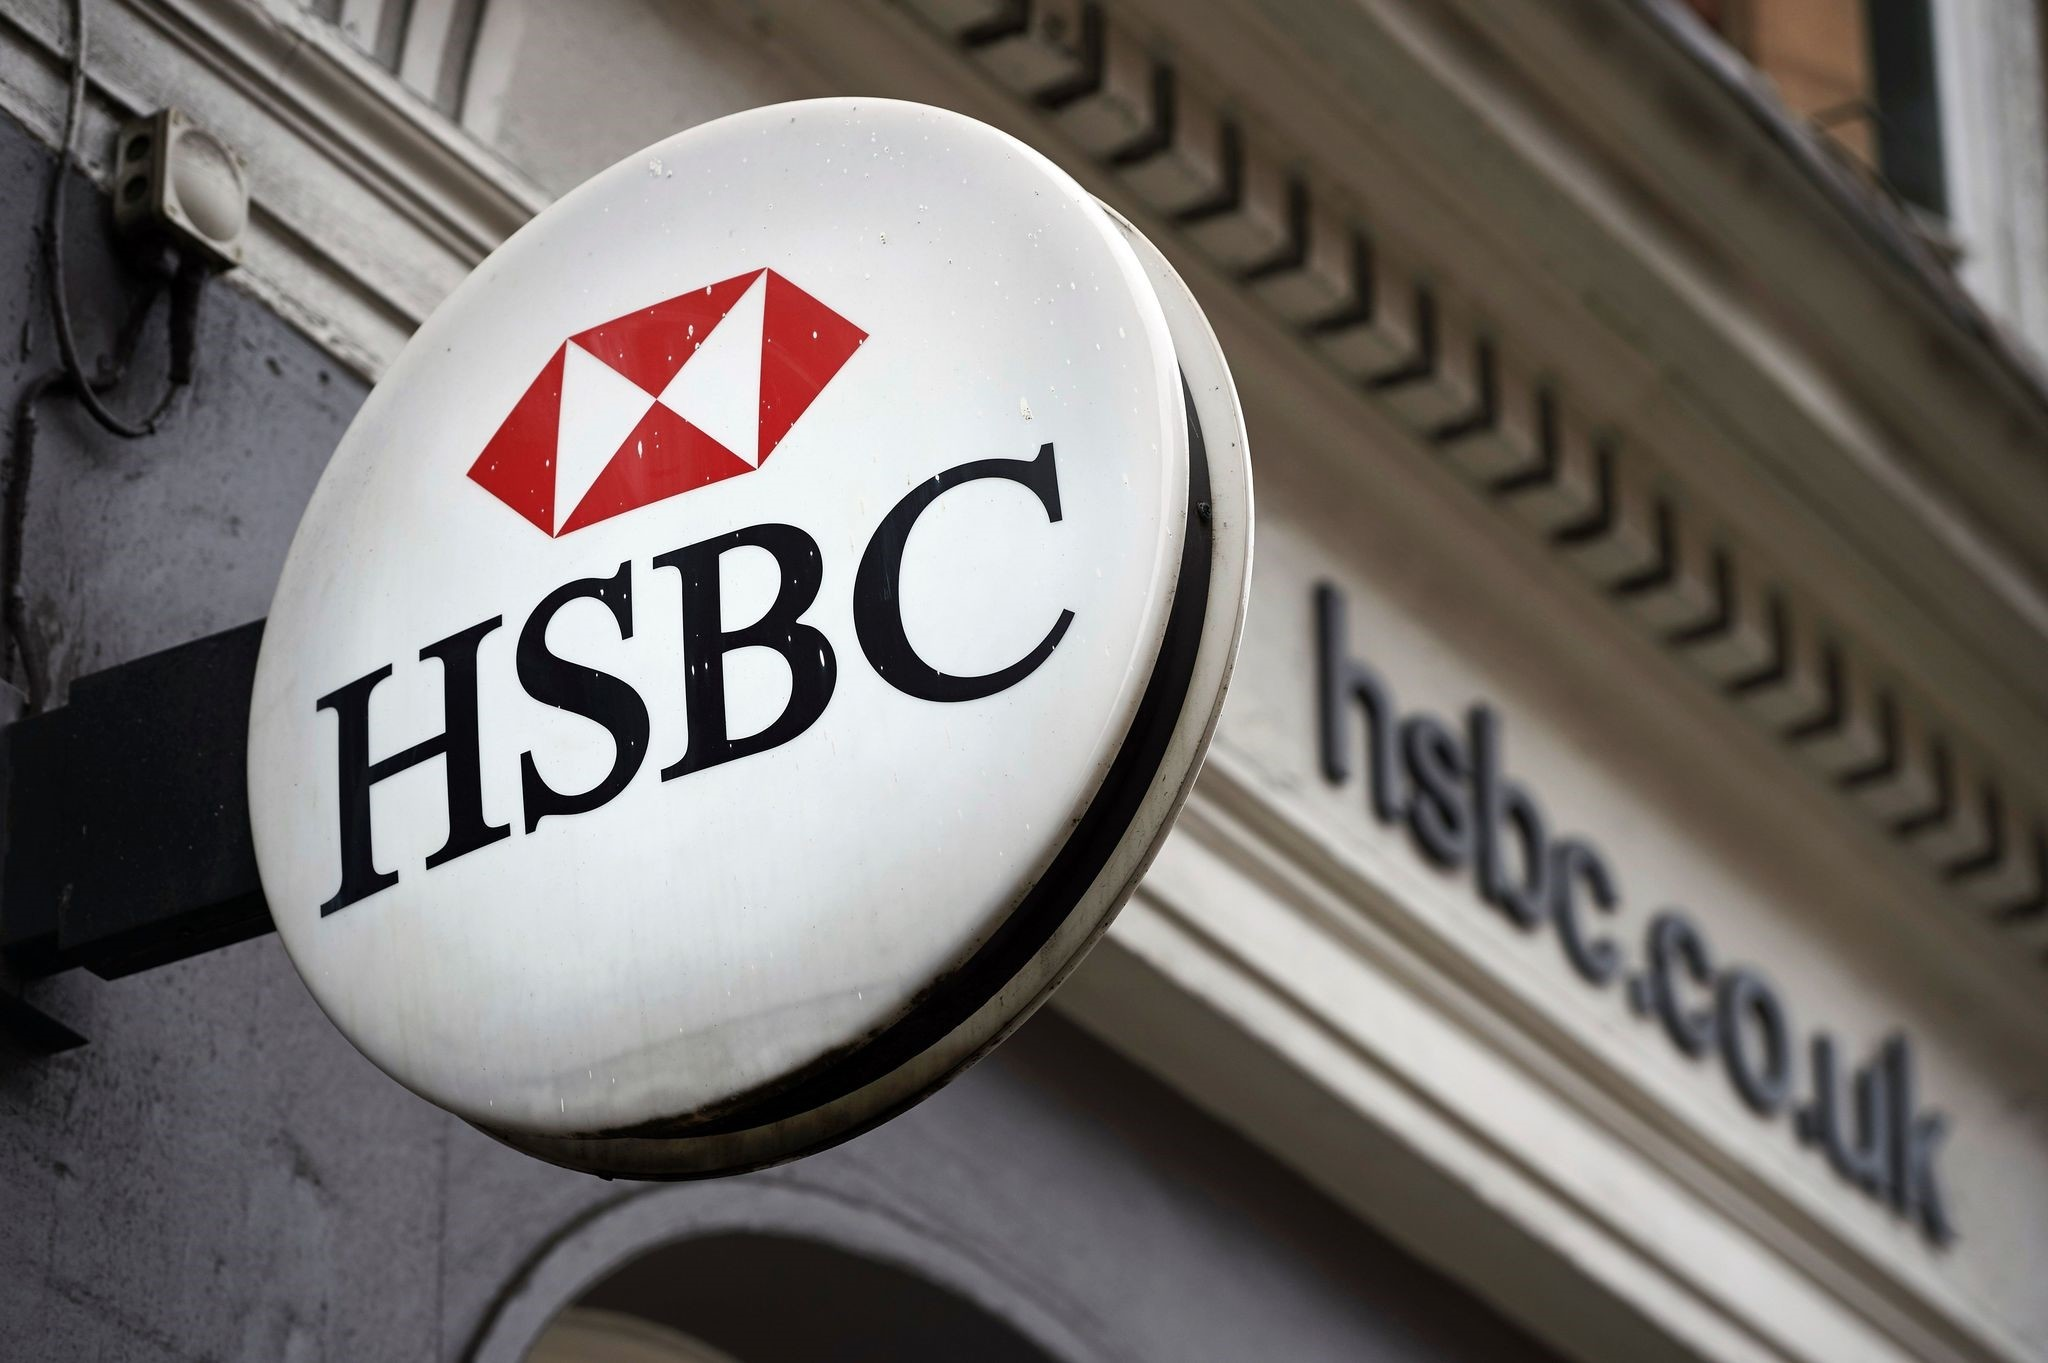 This file photo taken on October 22, 2015 shows an HSBC bank logo outside a branch of the bank in London. (AFP Photo)